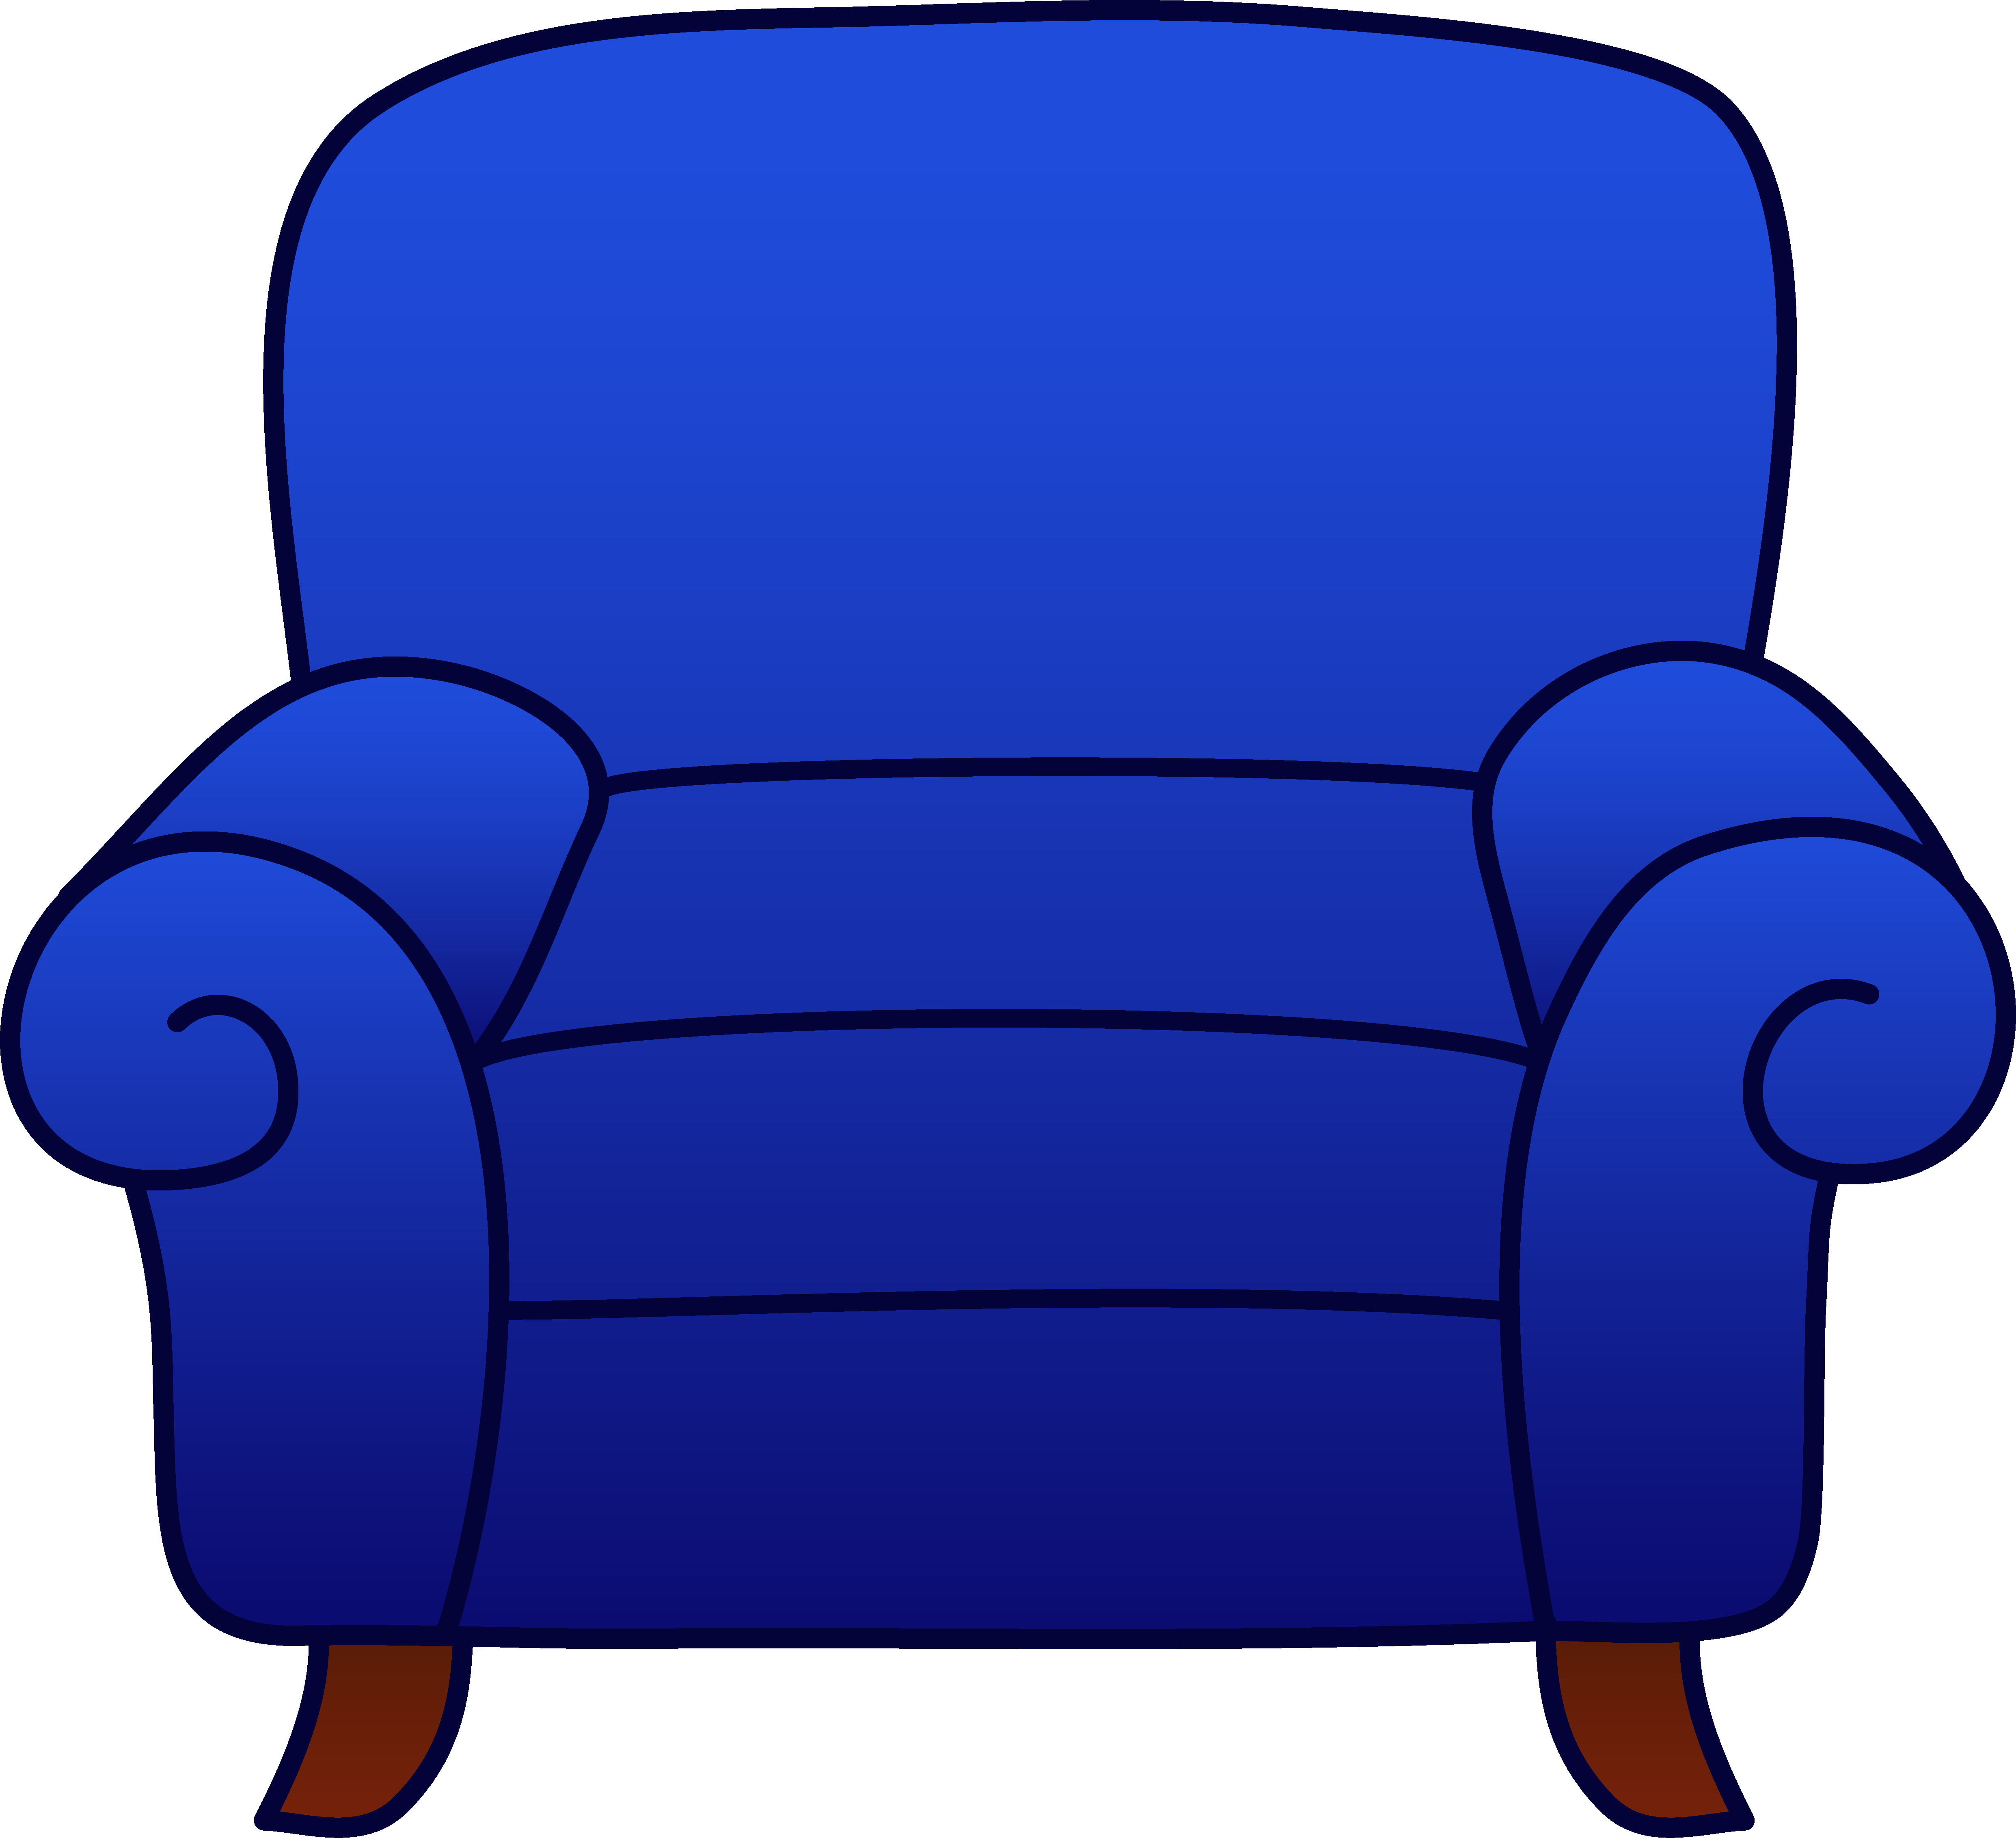 Blue chair clipart clipart royalty free download Blue Armchair Clipart - Free Clip Art clipart royalty free download